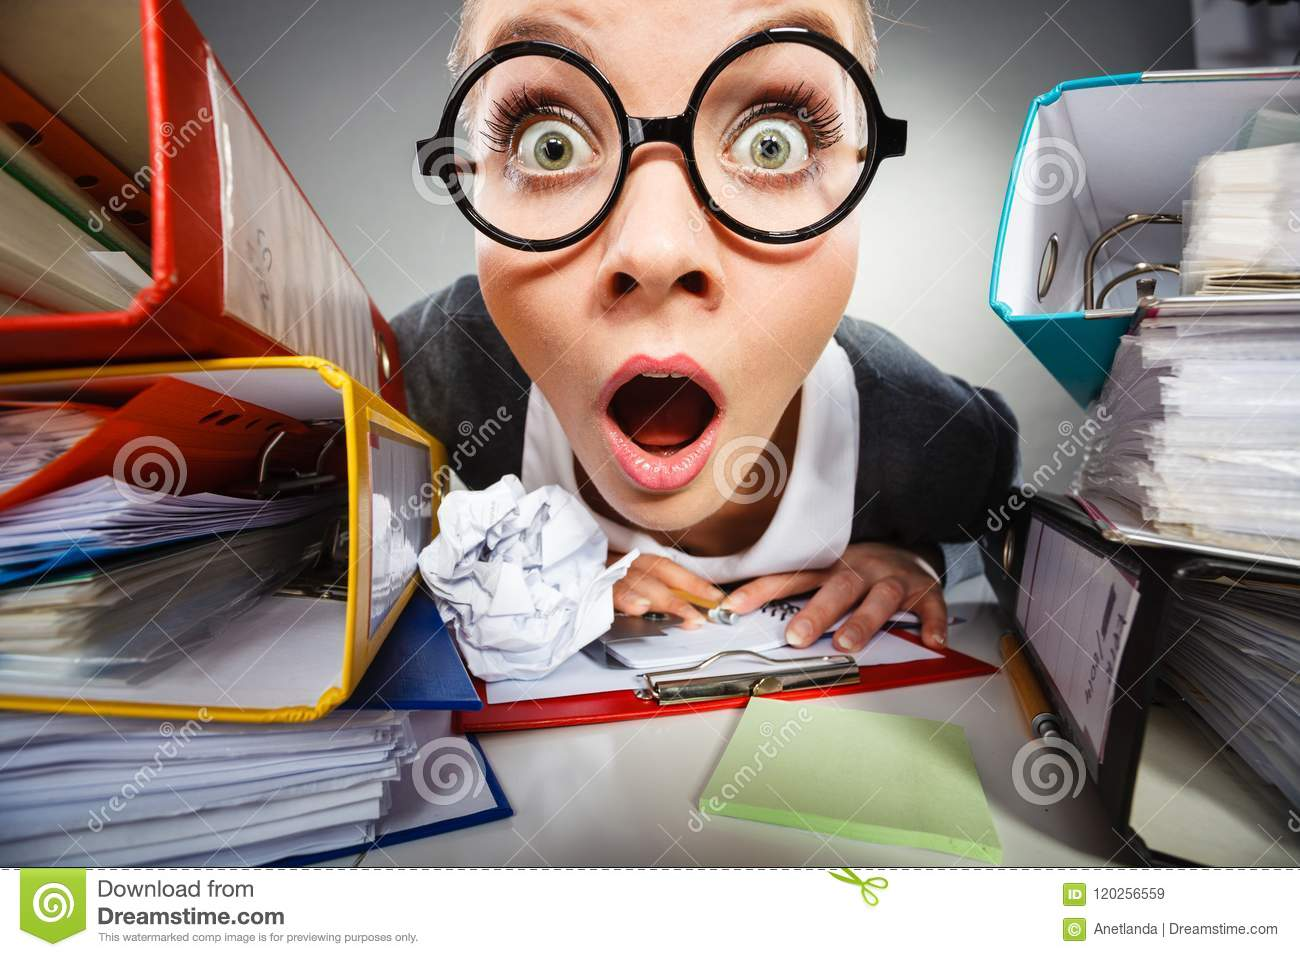 Download Crazy Thoughtful Accountant Businesswoman. Stock Image - Image of shock, thoughtful: 120256559